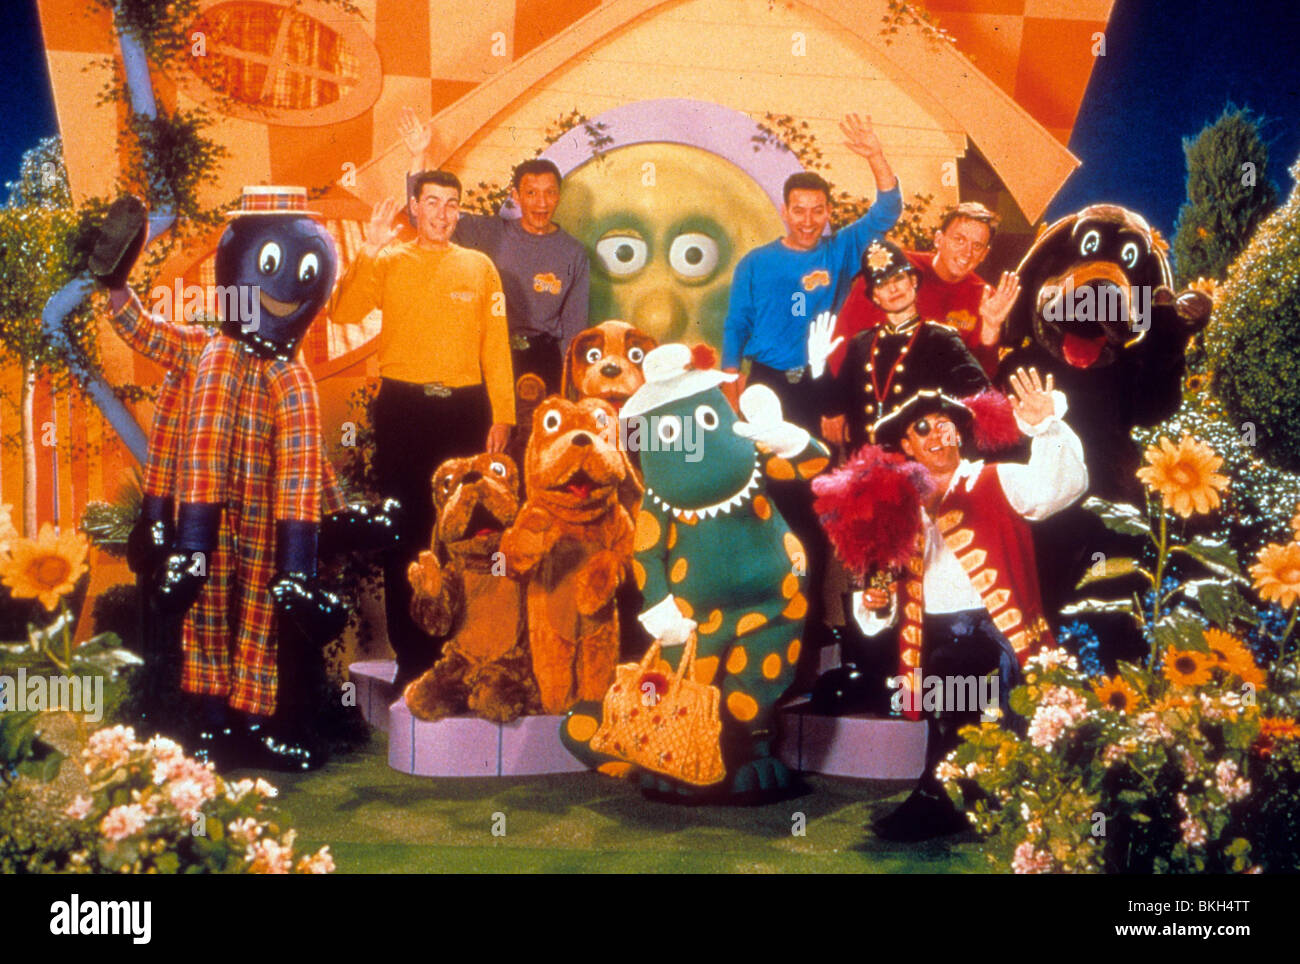 The Wiggles Movie 1997 Stock Photo Royalty Free Image